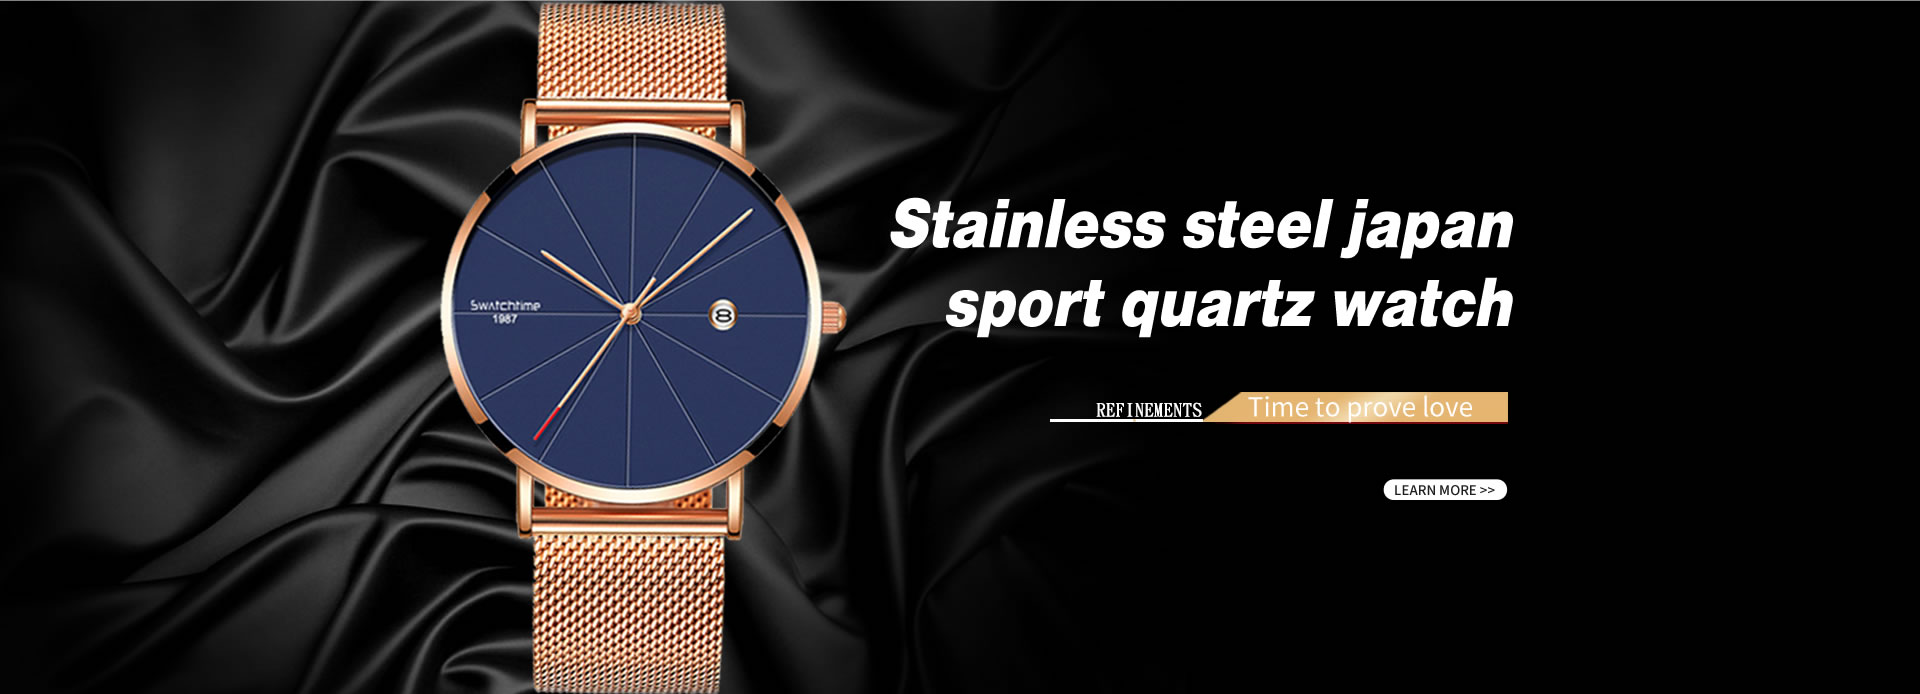 Stainless steel japan sport quartz watch